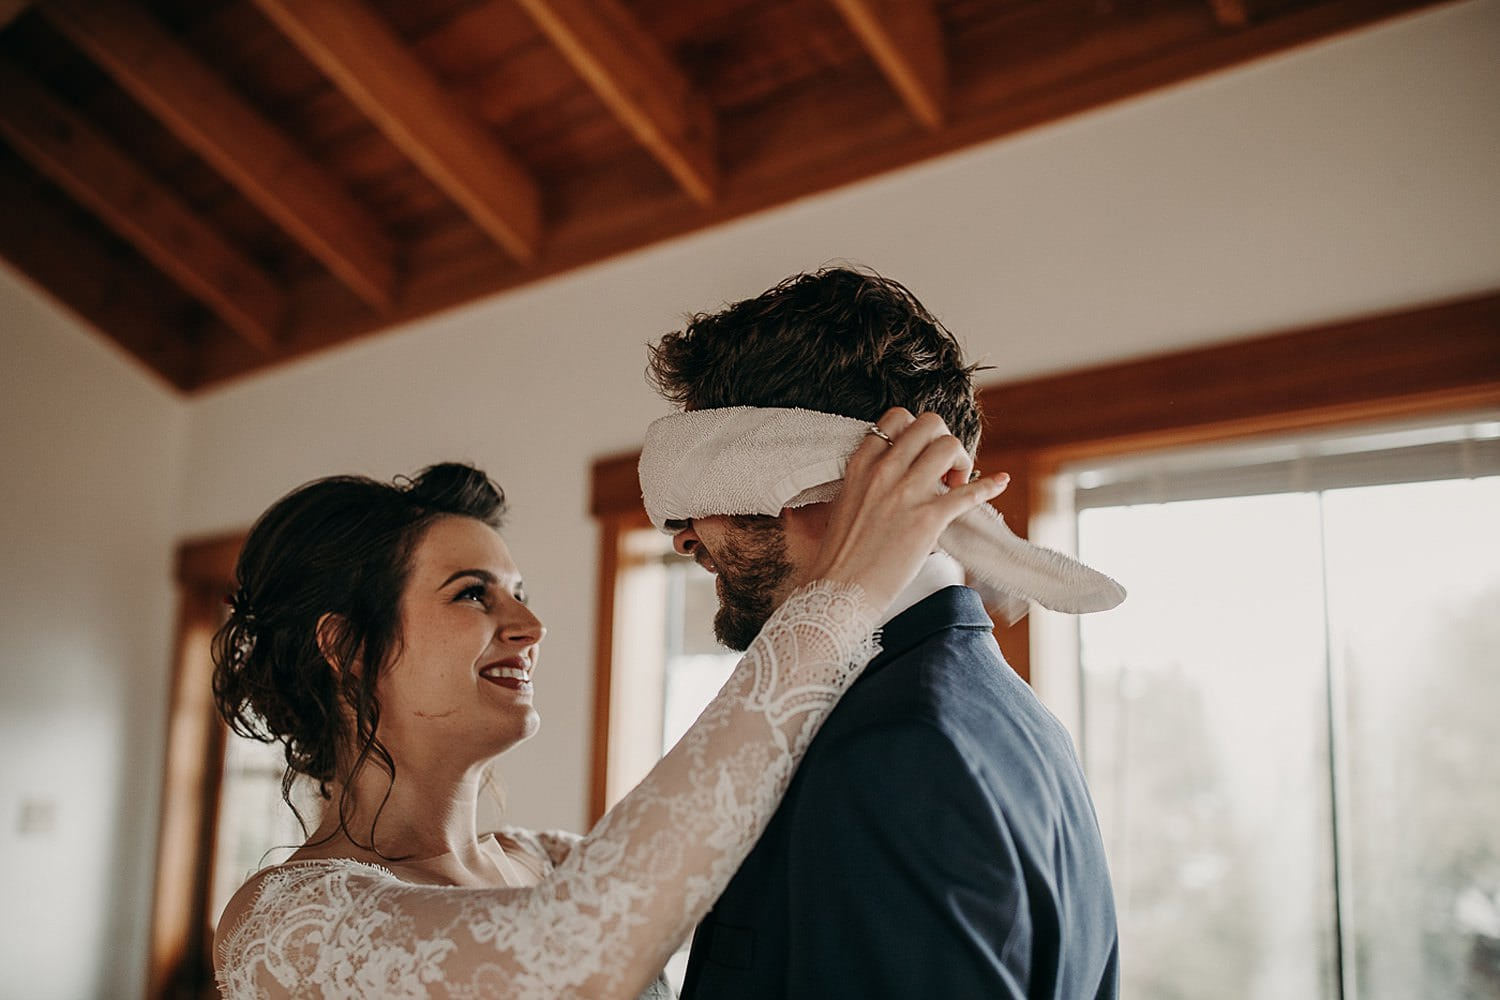 While smiling, the bride reaches to untie the towel from around the groom's eyes for surprise first look. Photograph by Austin, Texas wedding photographer Nikk Nguyen.